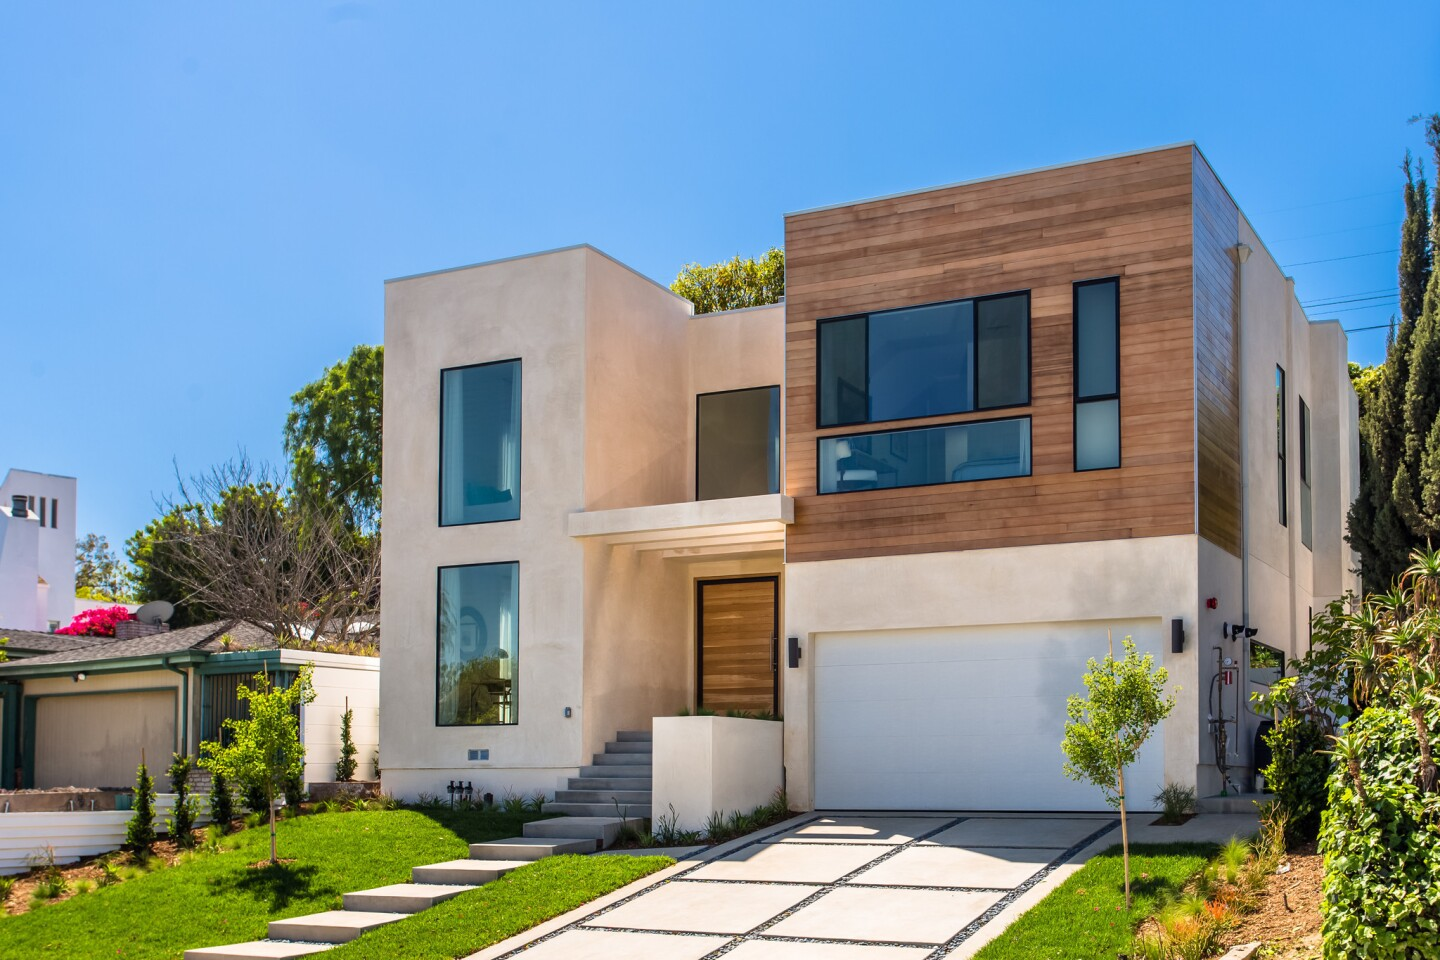 Home of the Day: Geometry + class in Mar Vista